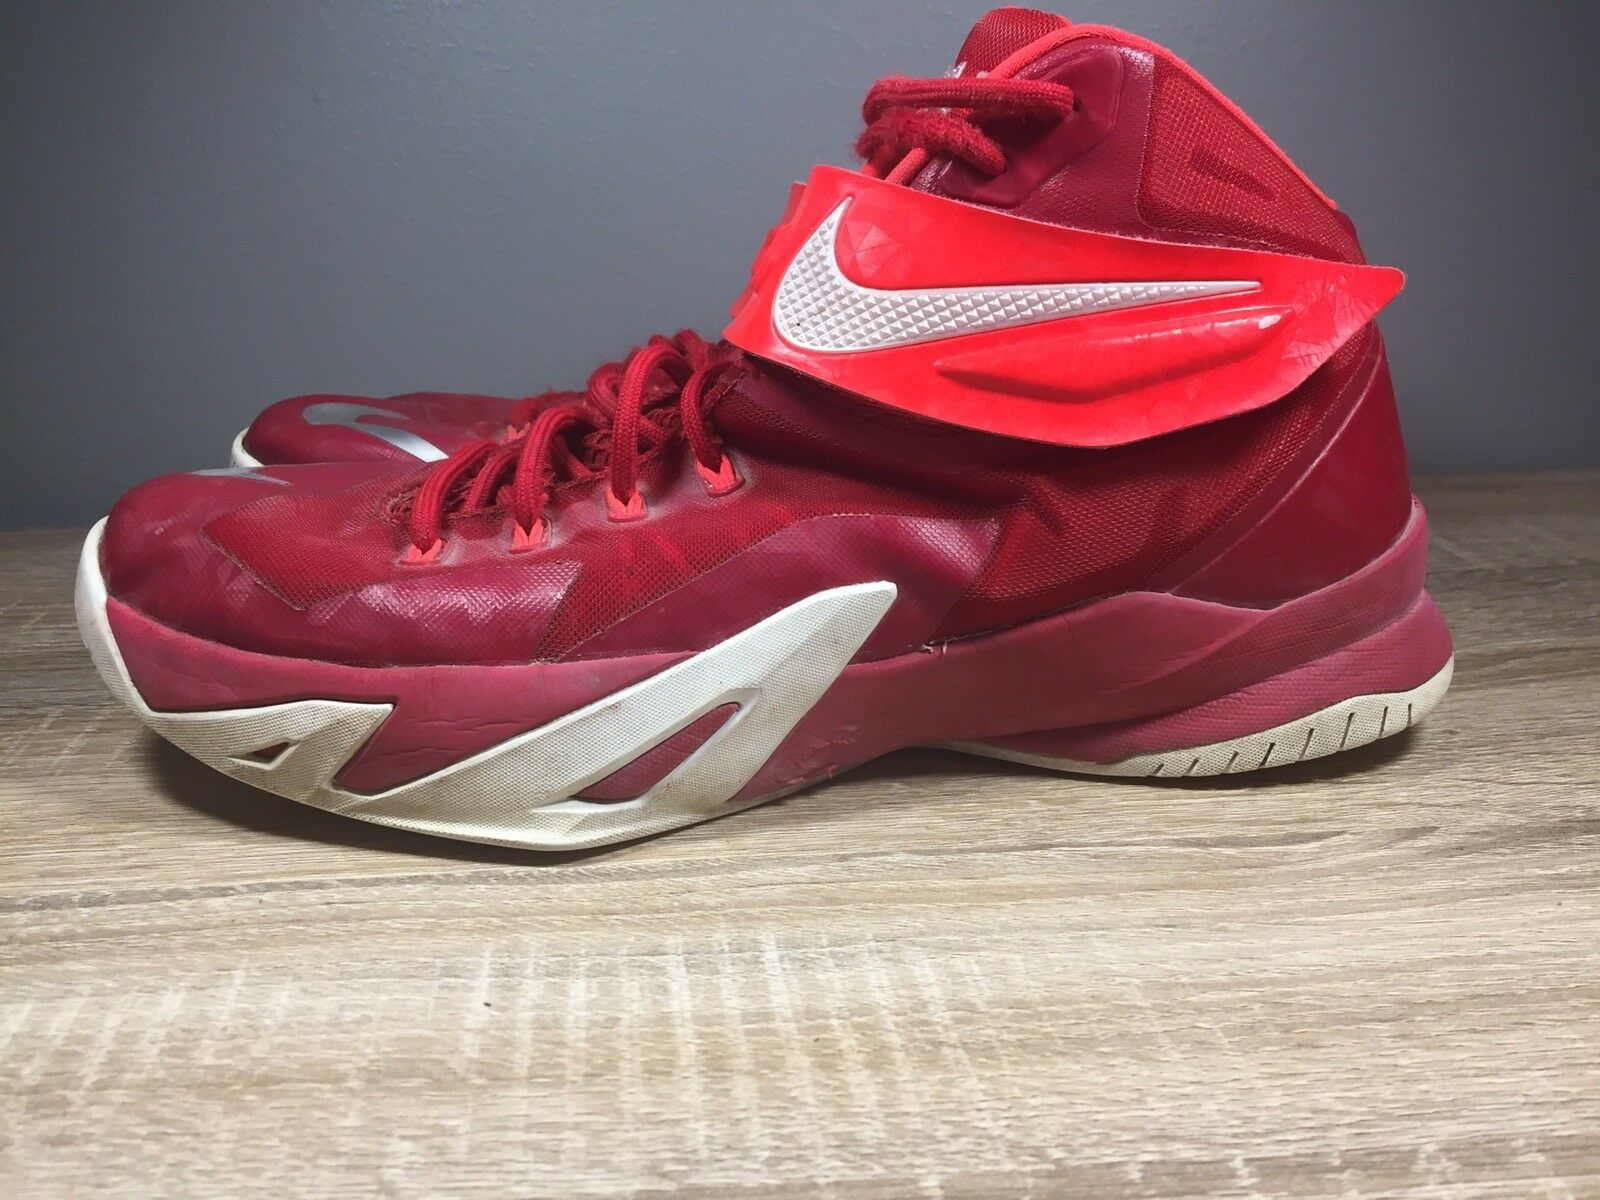 Lebron Zoom Soldier 8 Sz 12  best-selling model of the brand